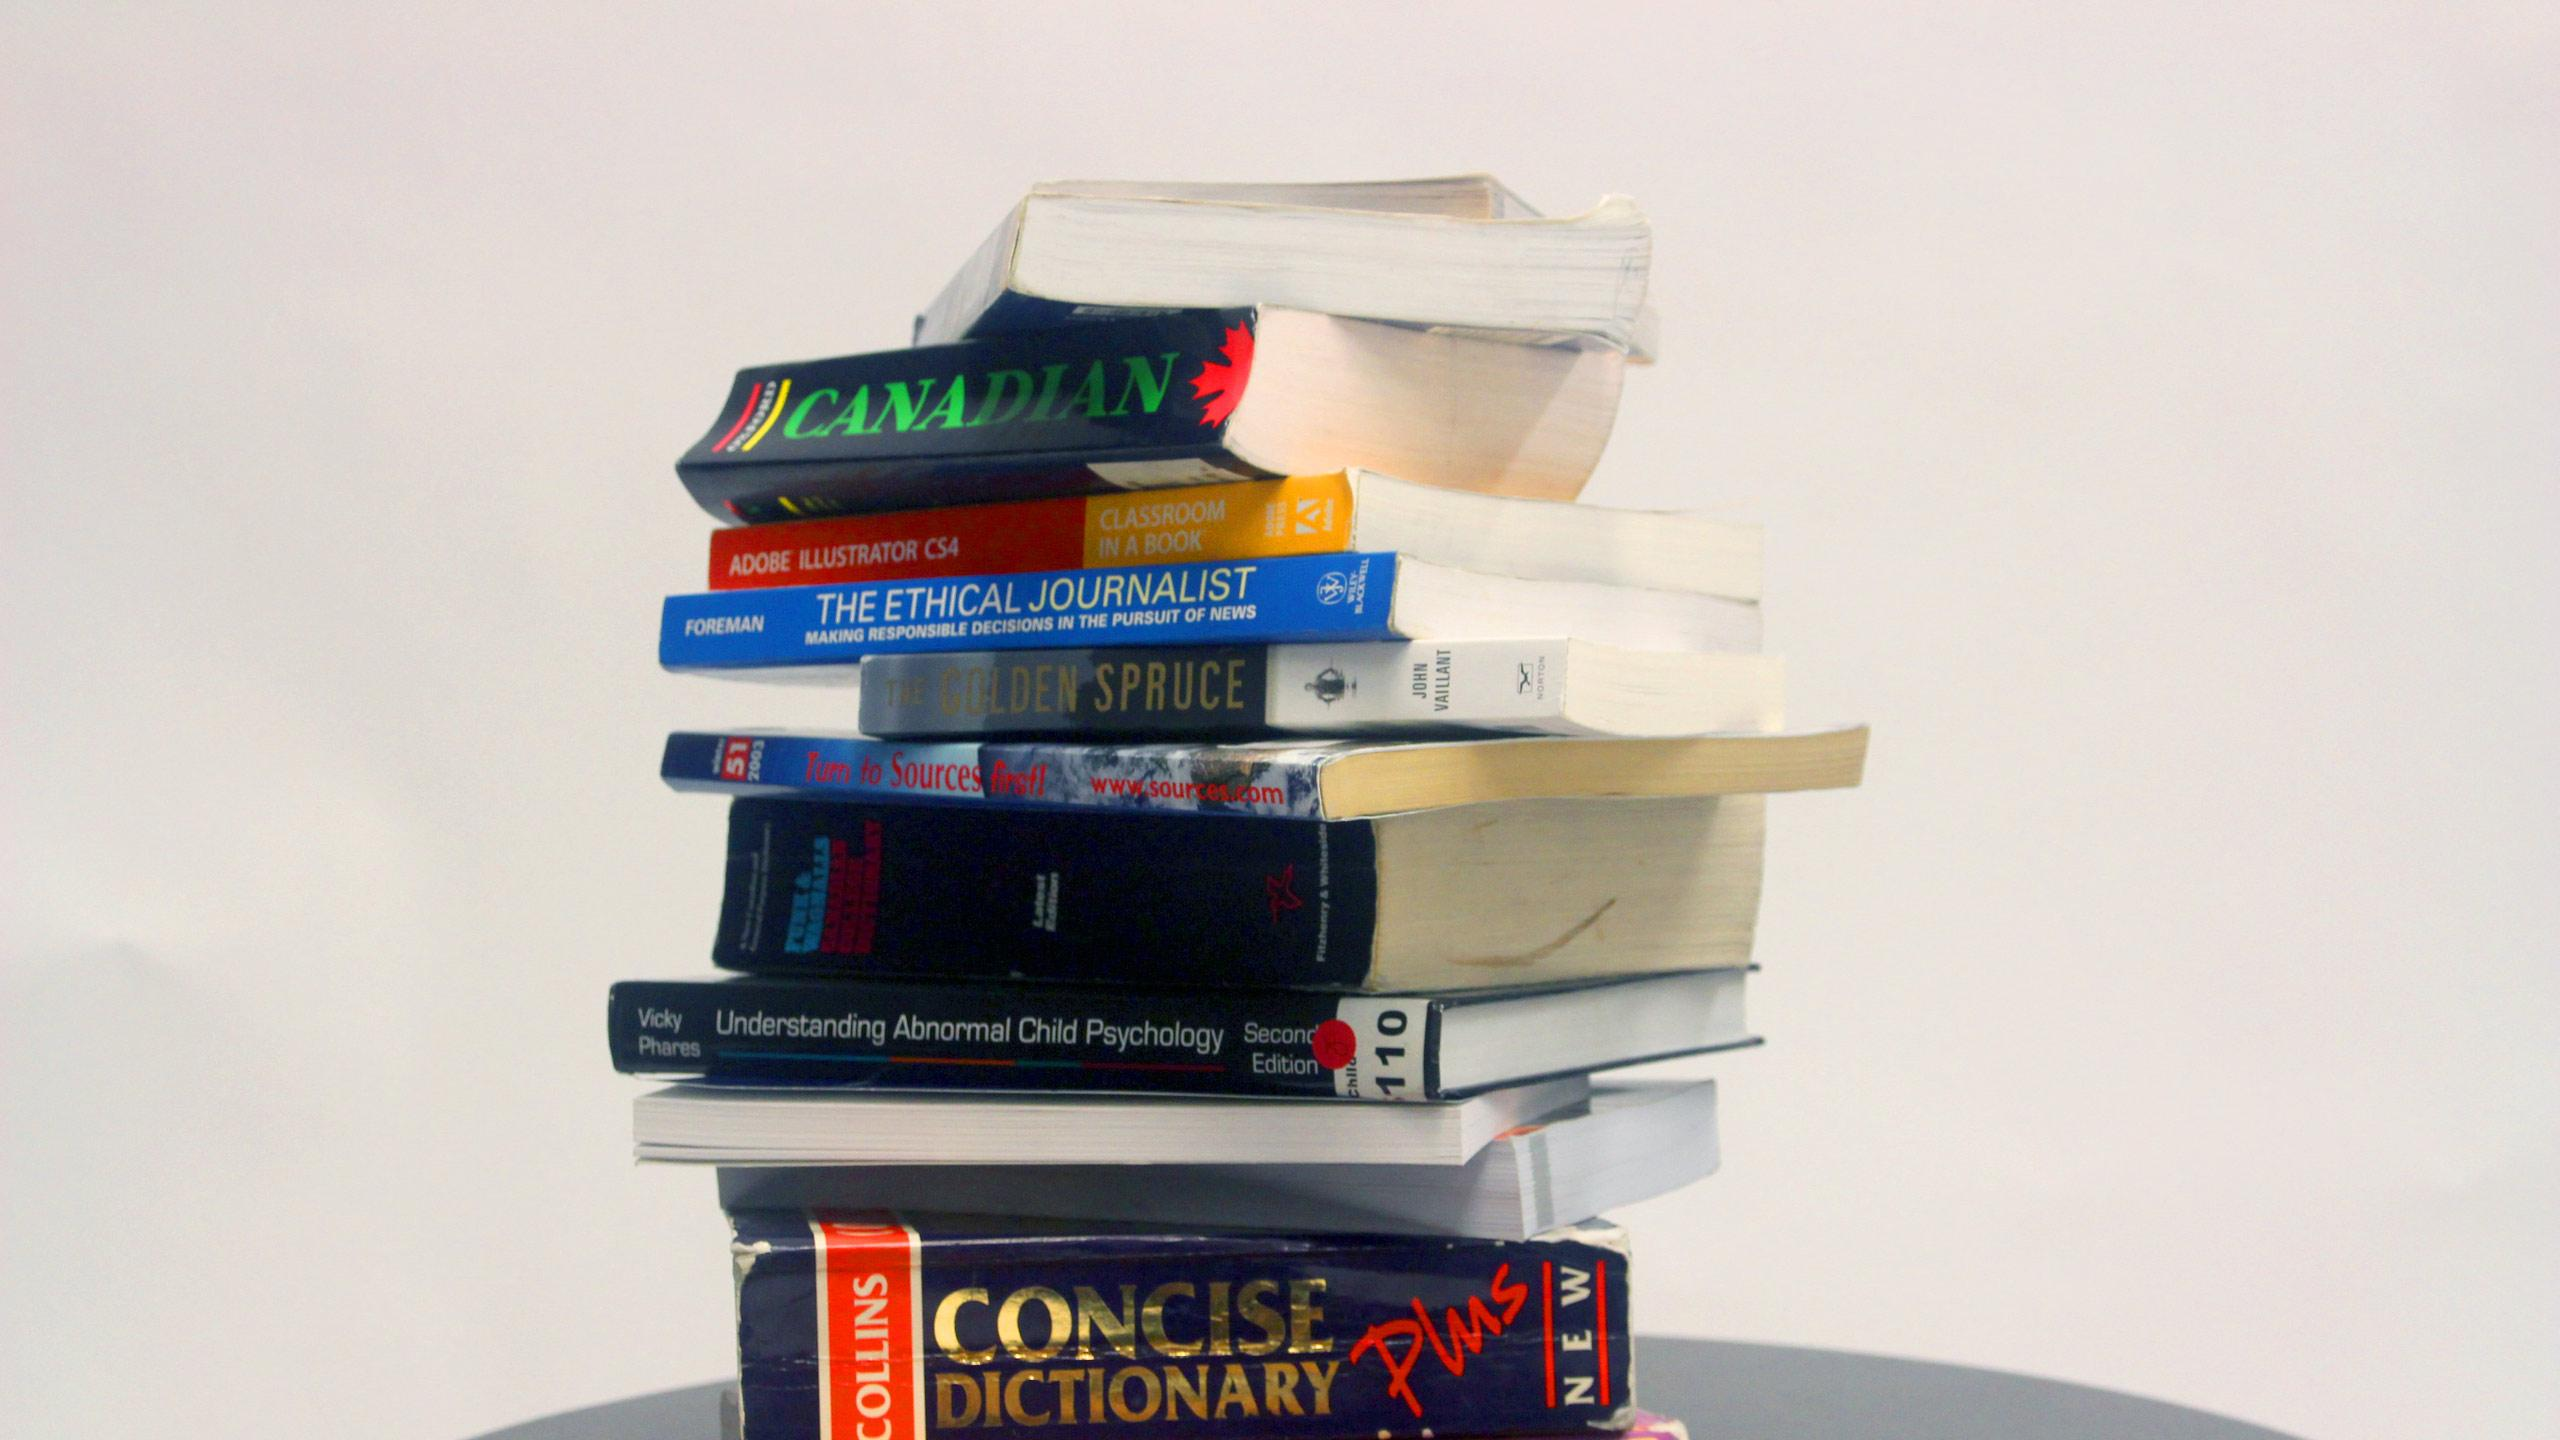 A stack of print textbooks.